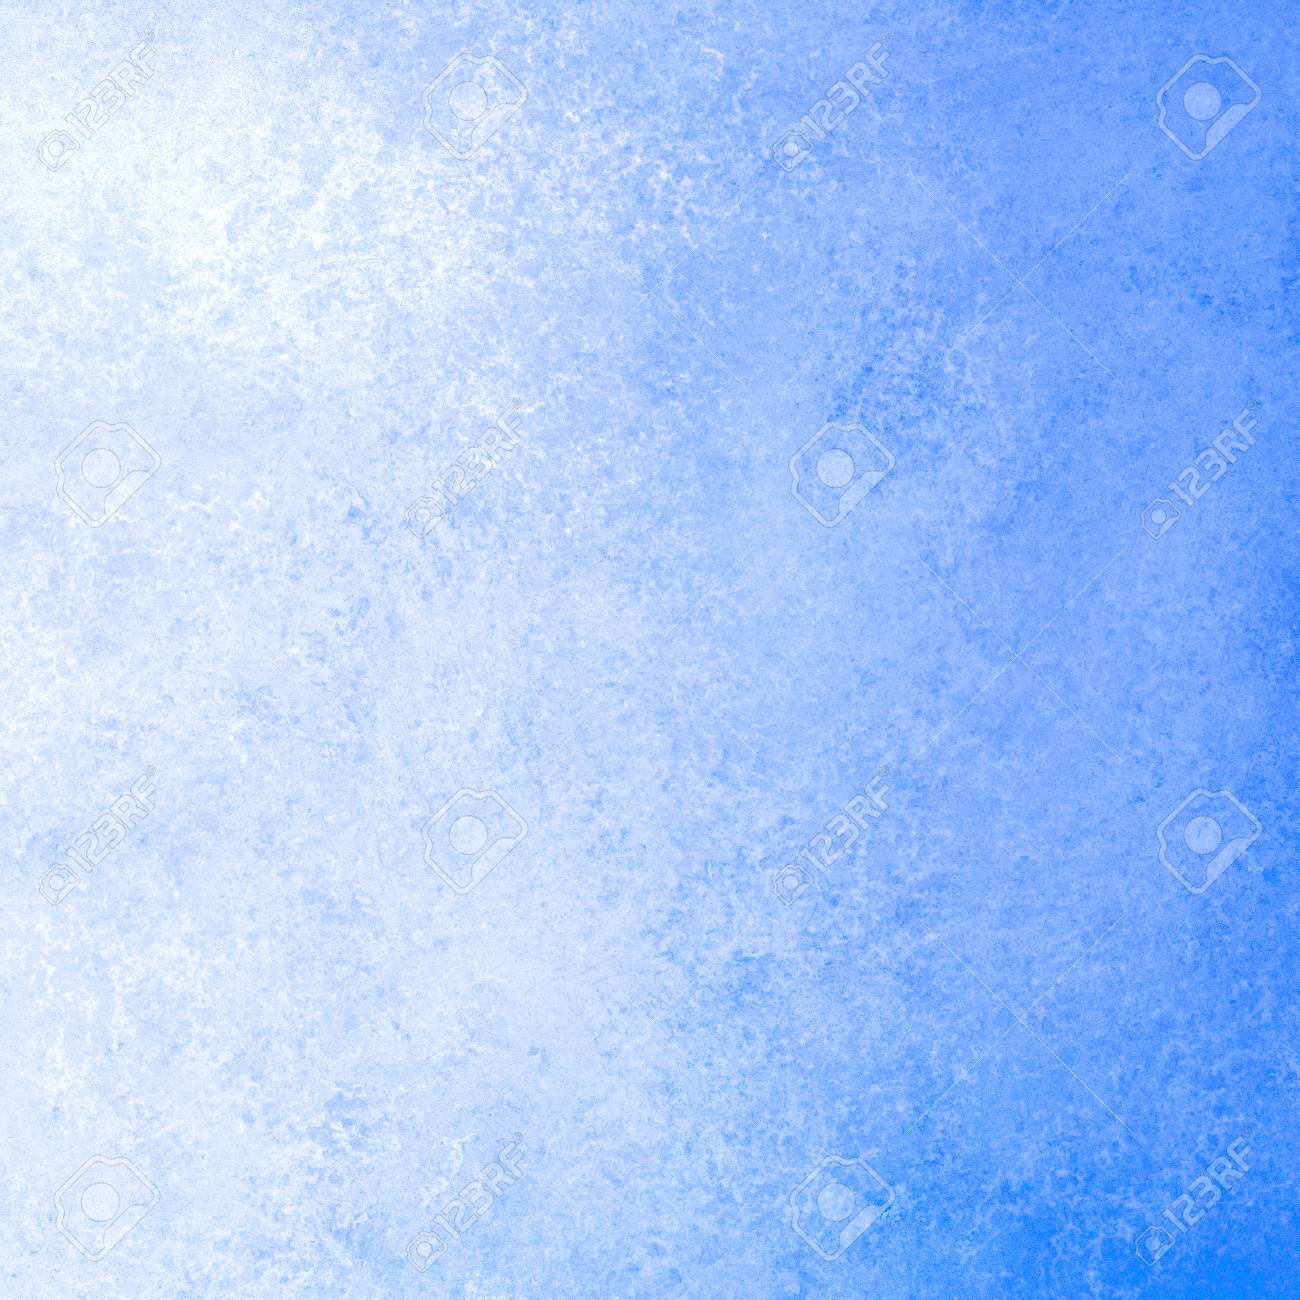 Faded Blue And White Background With Grungy Texture And Gradient ...